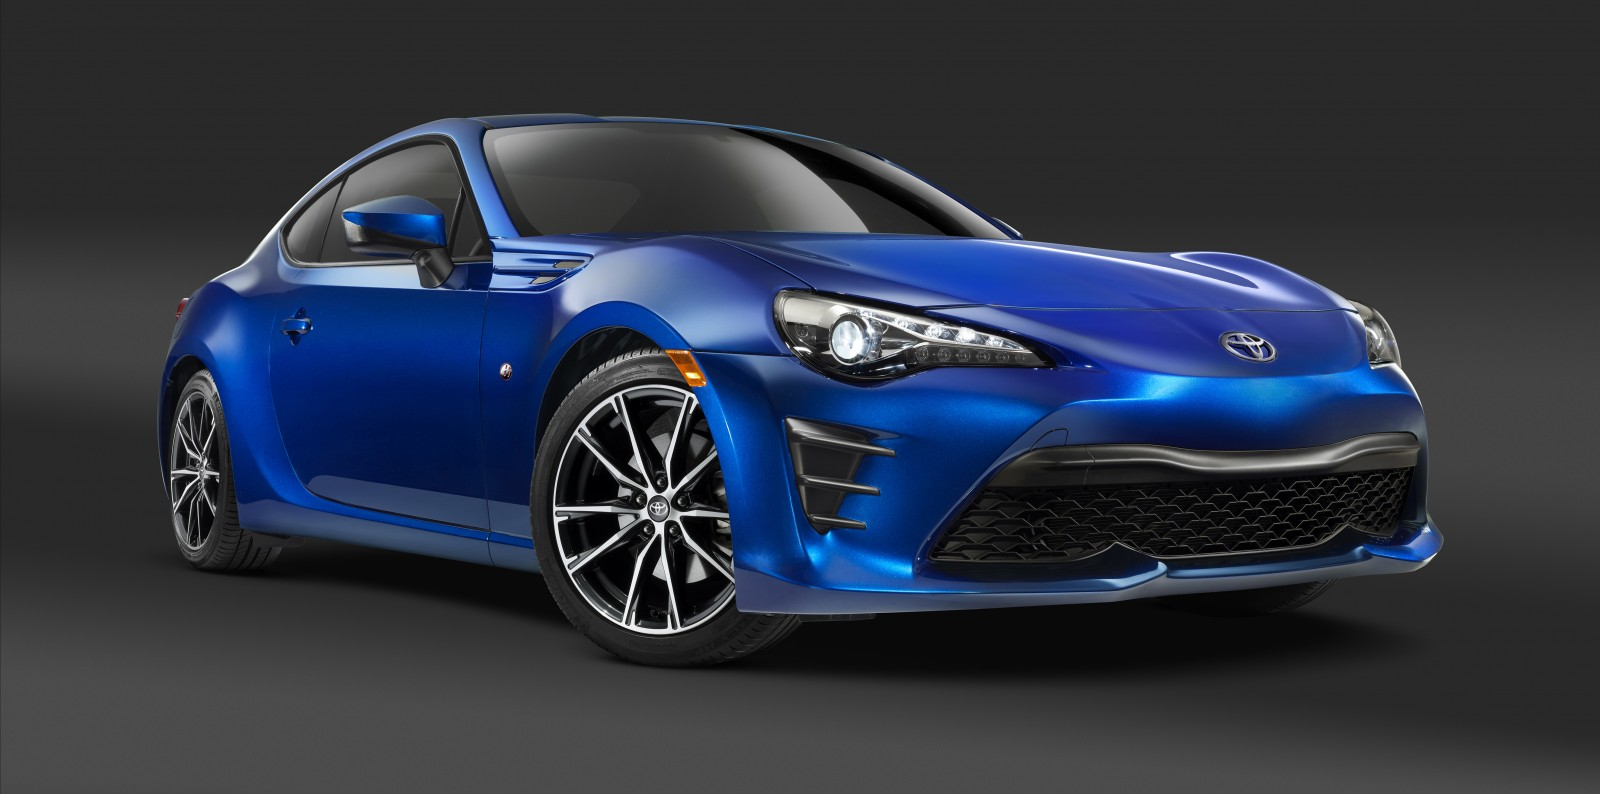 2017 Toyota 86 front angle